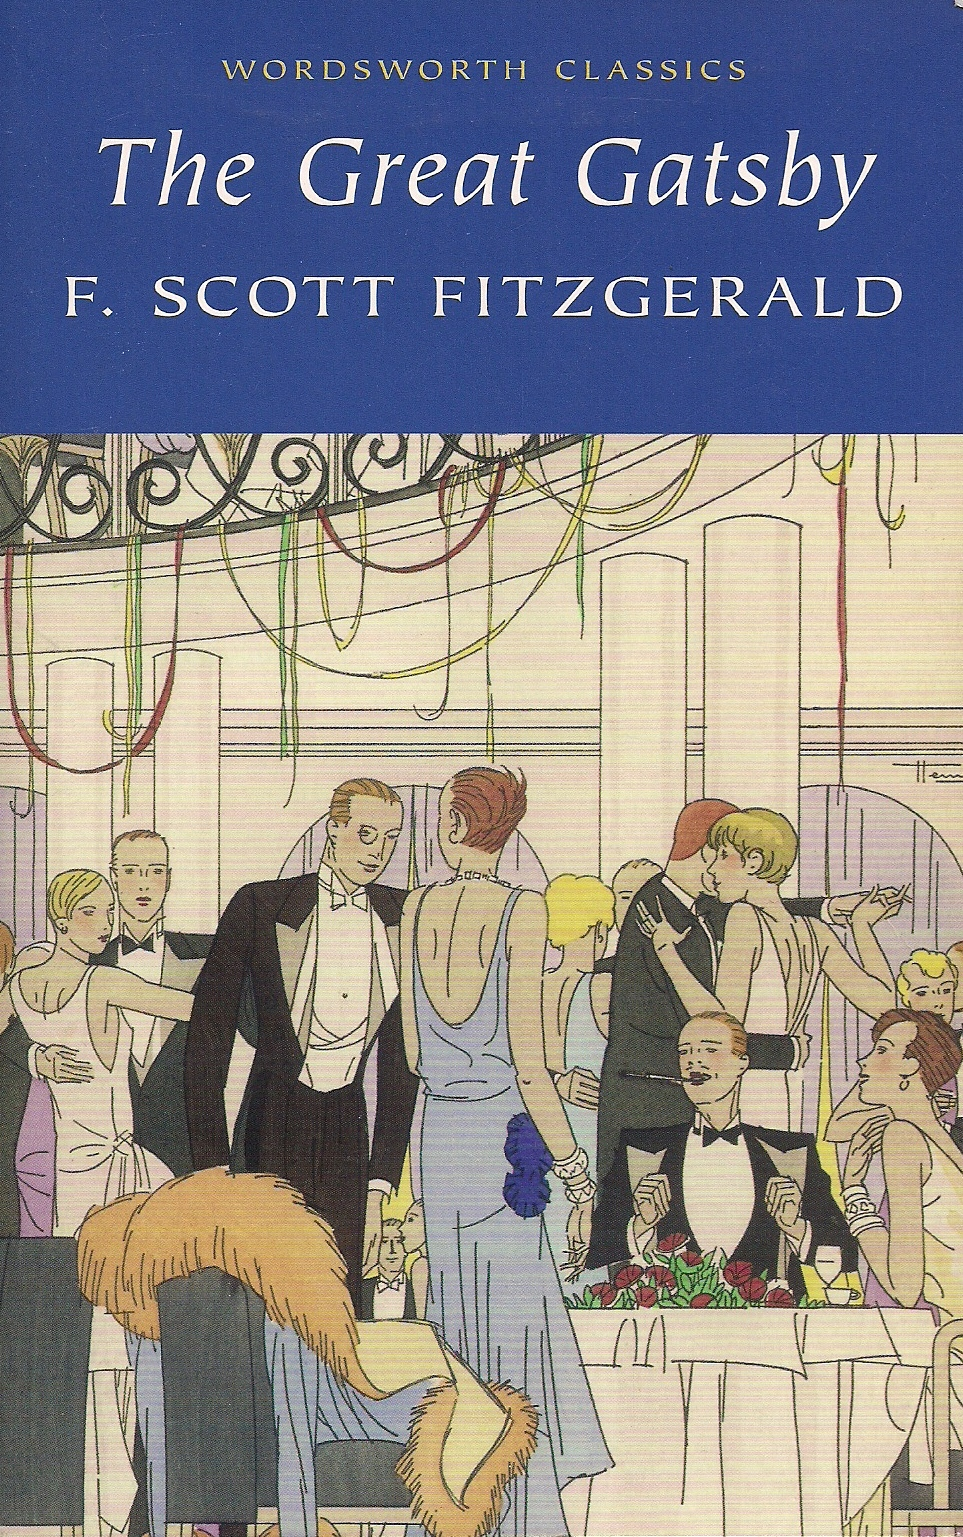 a literary critique of the great gatsby by f scott fitzgerald Fitzgeralds rendering of a dream  the juxtaposition of poetic language and vulgarity mirrors fitzgerald's critique of the  the great gatsby f scott fitzgerald.